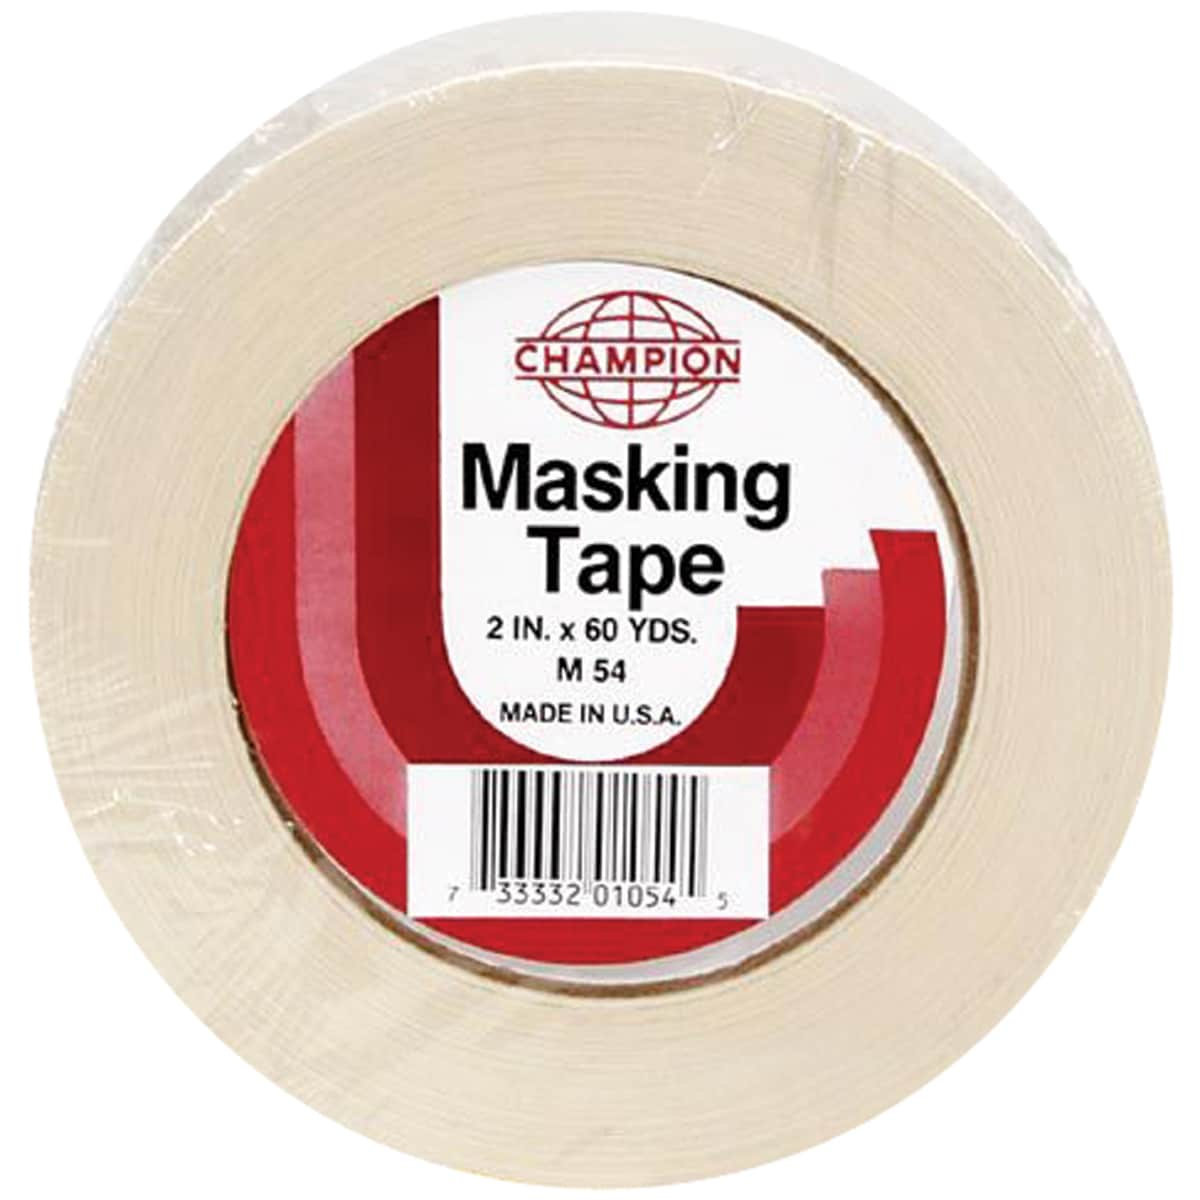 3m masking tape 2 inch wide